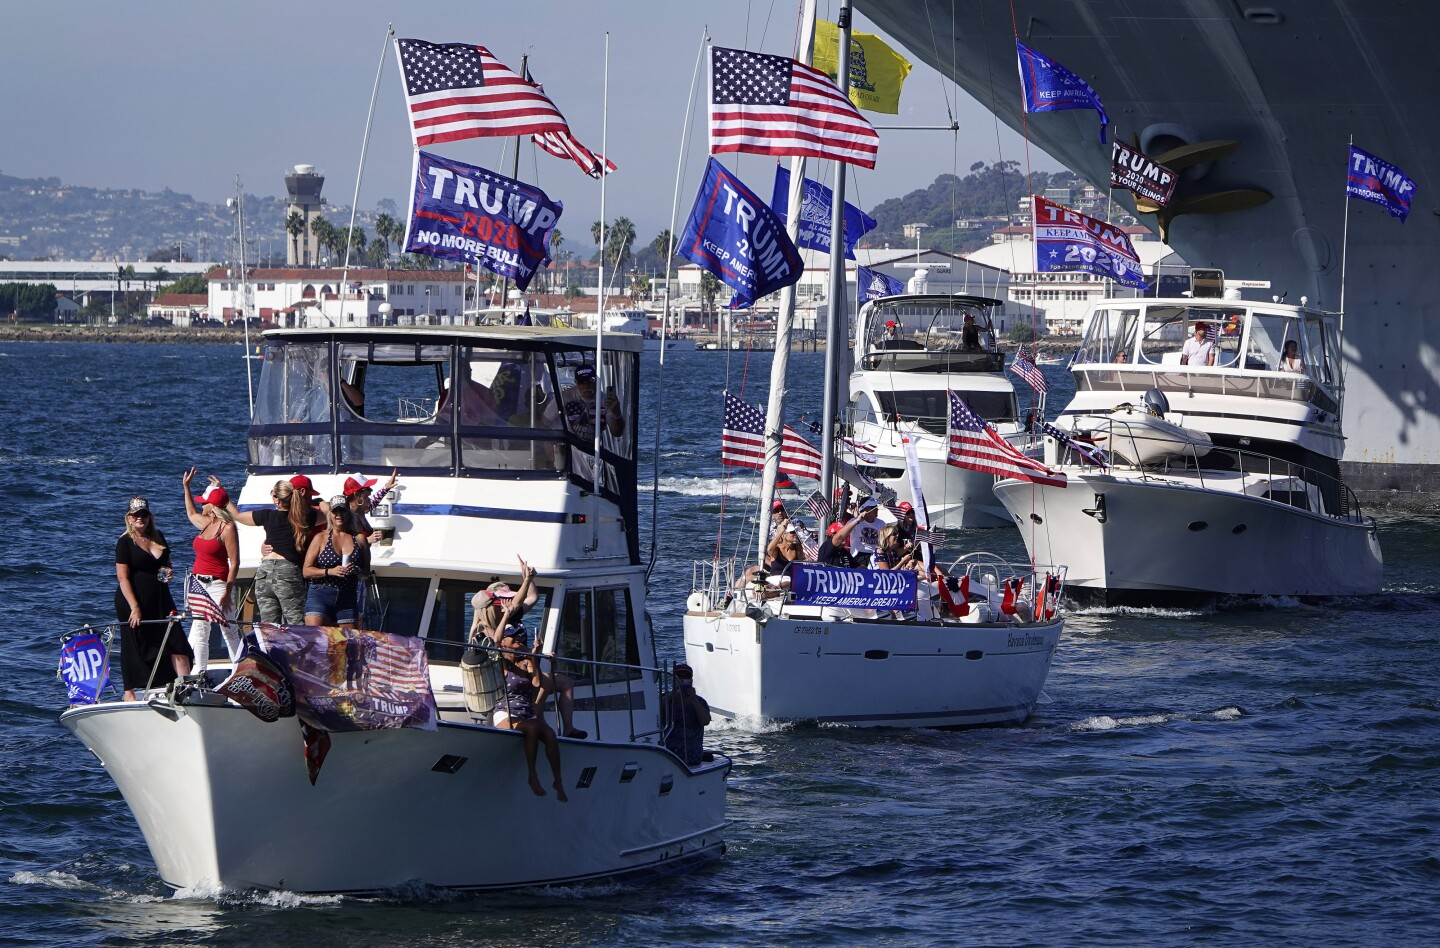 People show their support for President Donald Trump during a Trump Boat Parade in San Diego Bay.